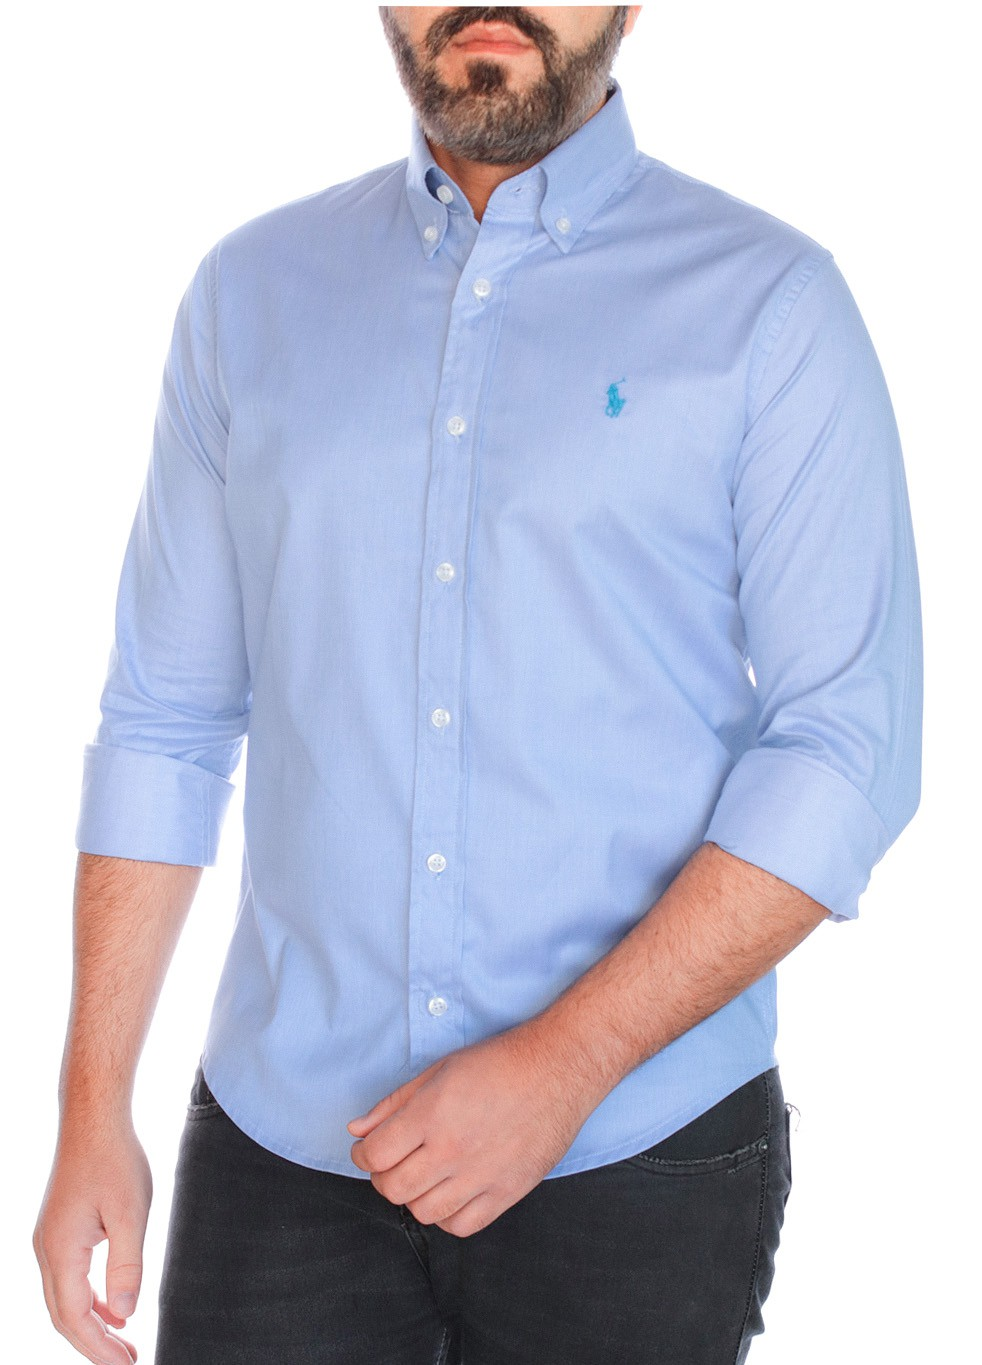 Camisa Ralph Lauren Masculina Custom Fit Machinate Tricoline Azul Claro